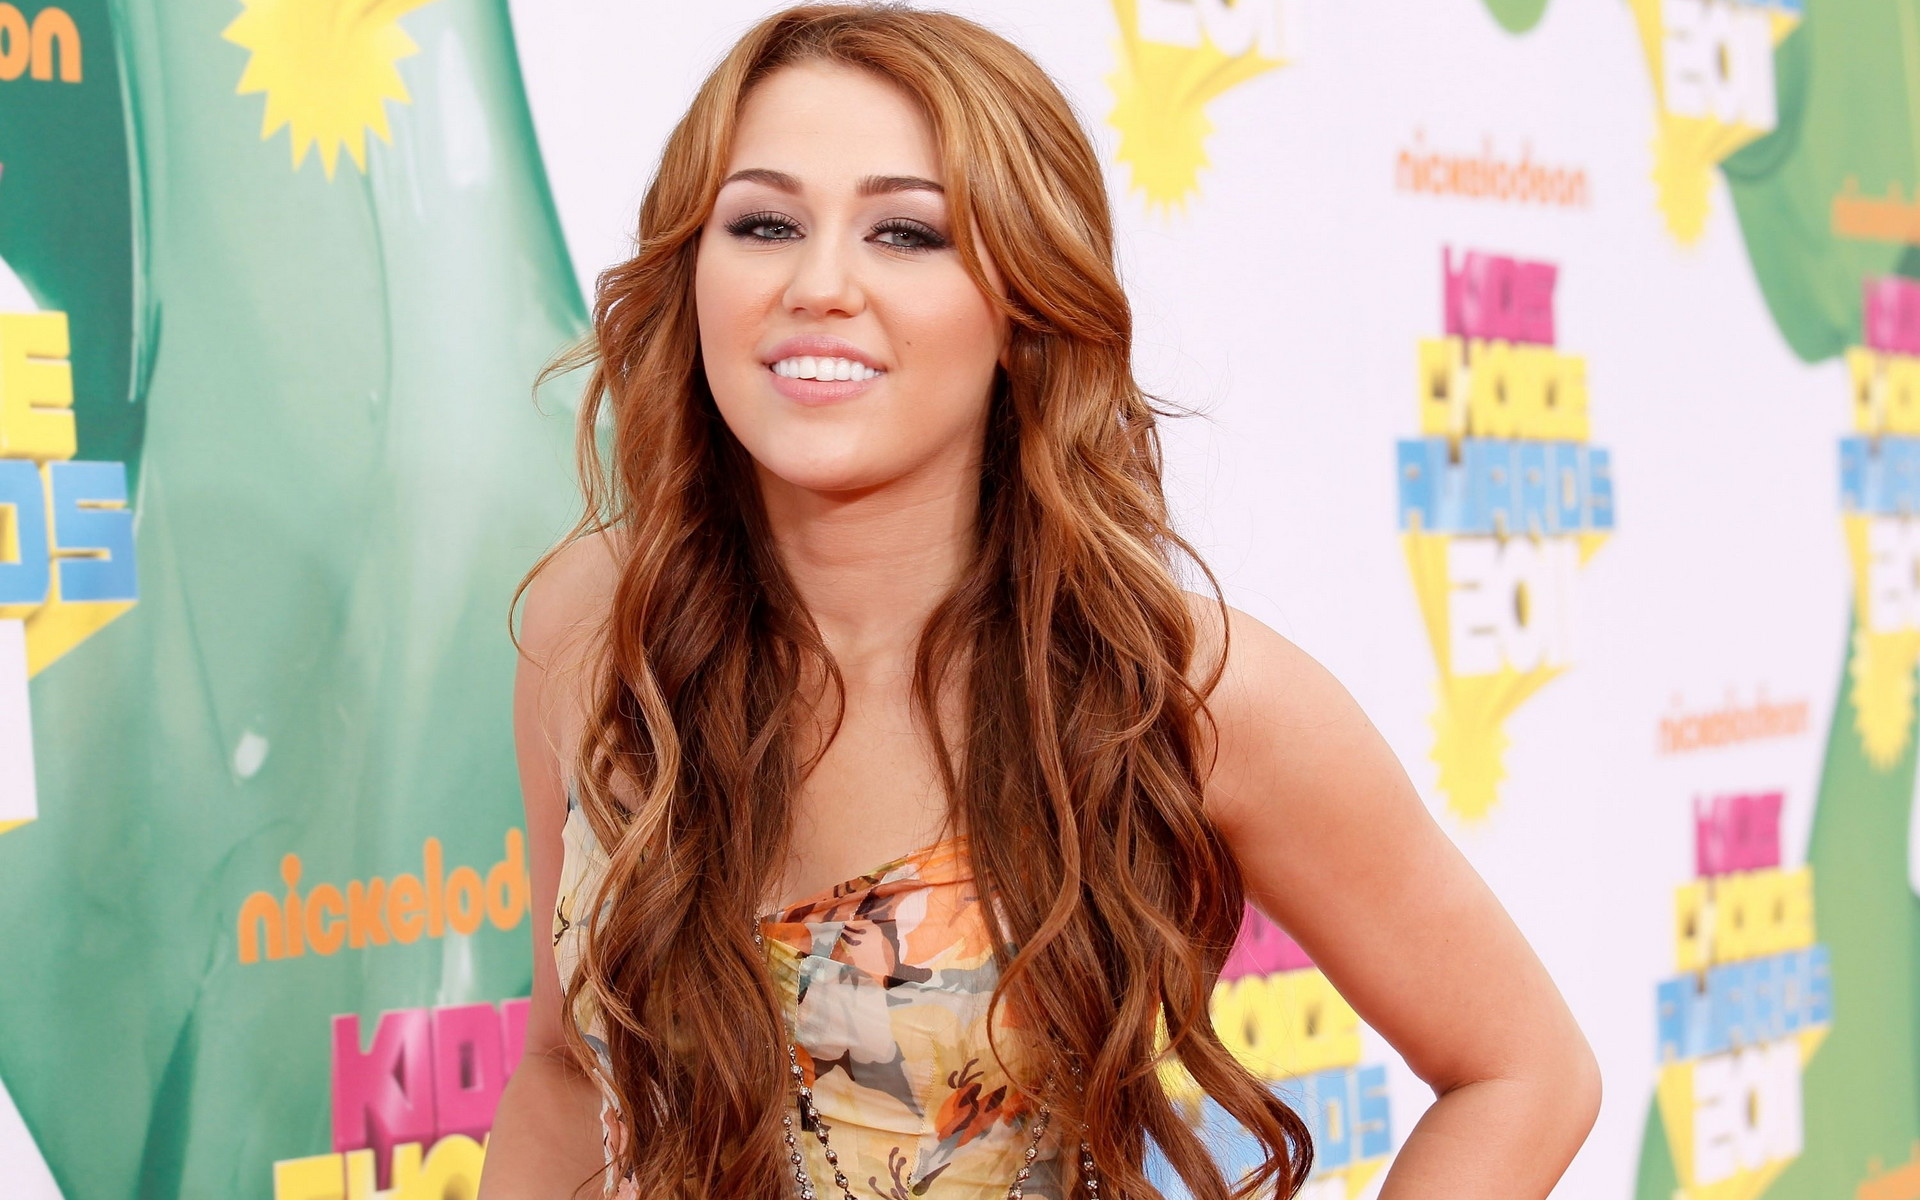 1920x1200 Miley Cyrus HD Desktop Wallpapers | Hot miley cyrus | miley songs | miley  album |